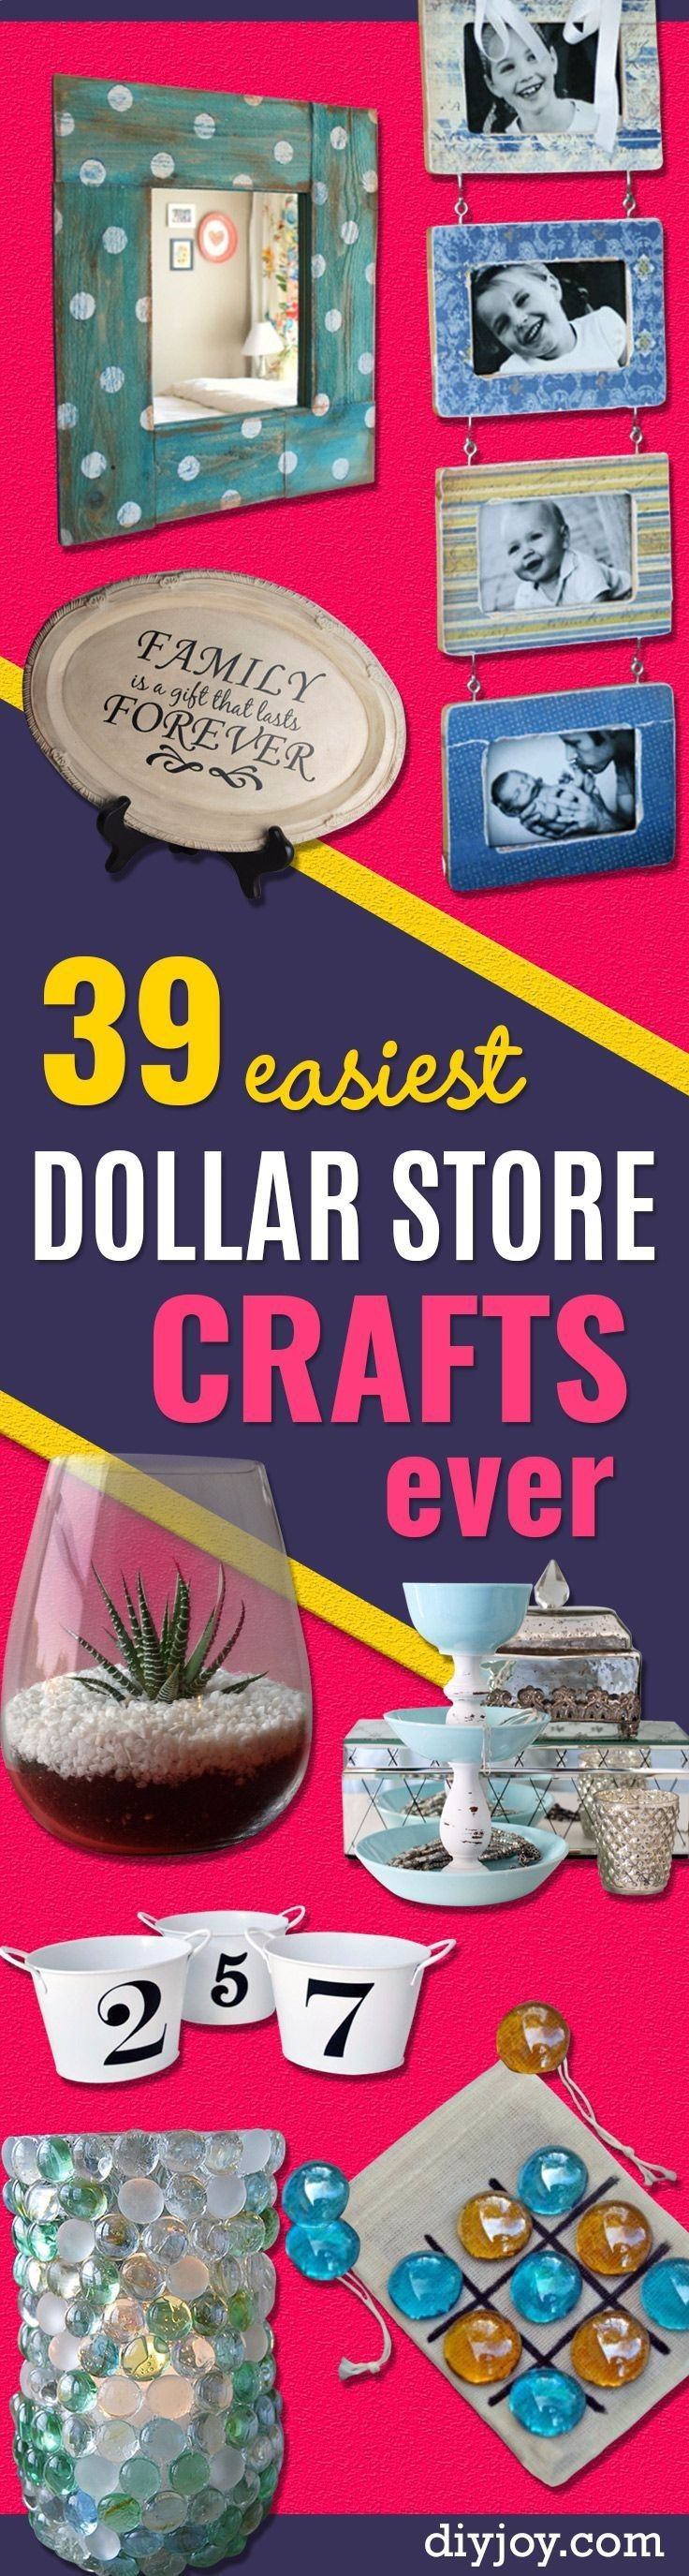 Earn money from home 39 easiest dollar store crafts ever quick and earn money from home 39 easiest dollar store crafts ever quick and cheap crafts to make dollar store craft ideas to make and sell cute dollar store do solutioingenieria Image collections